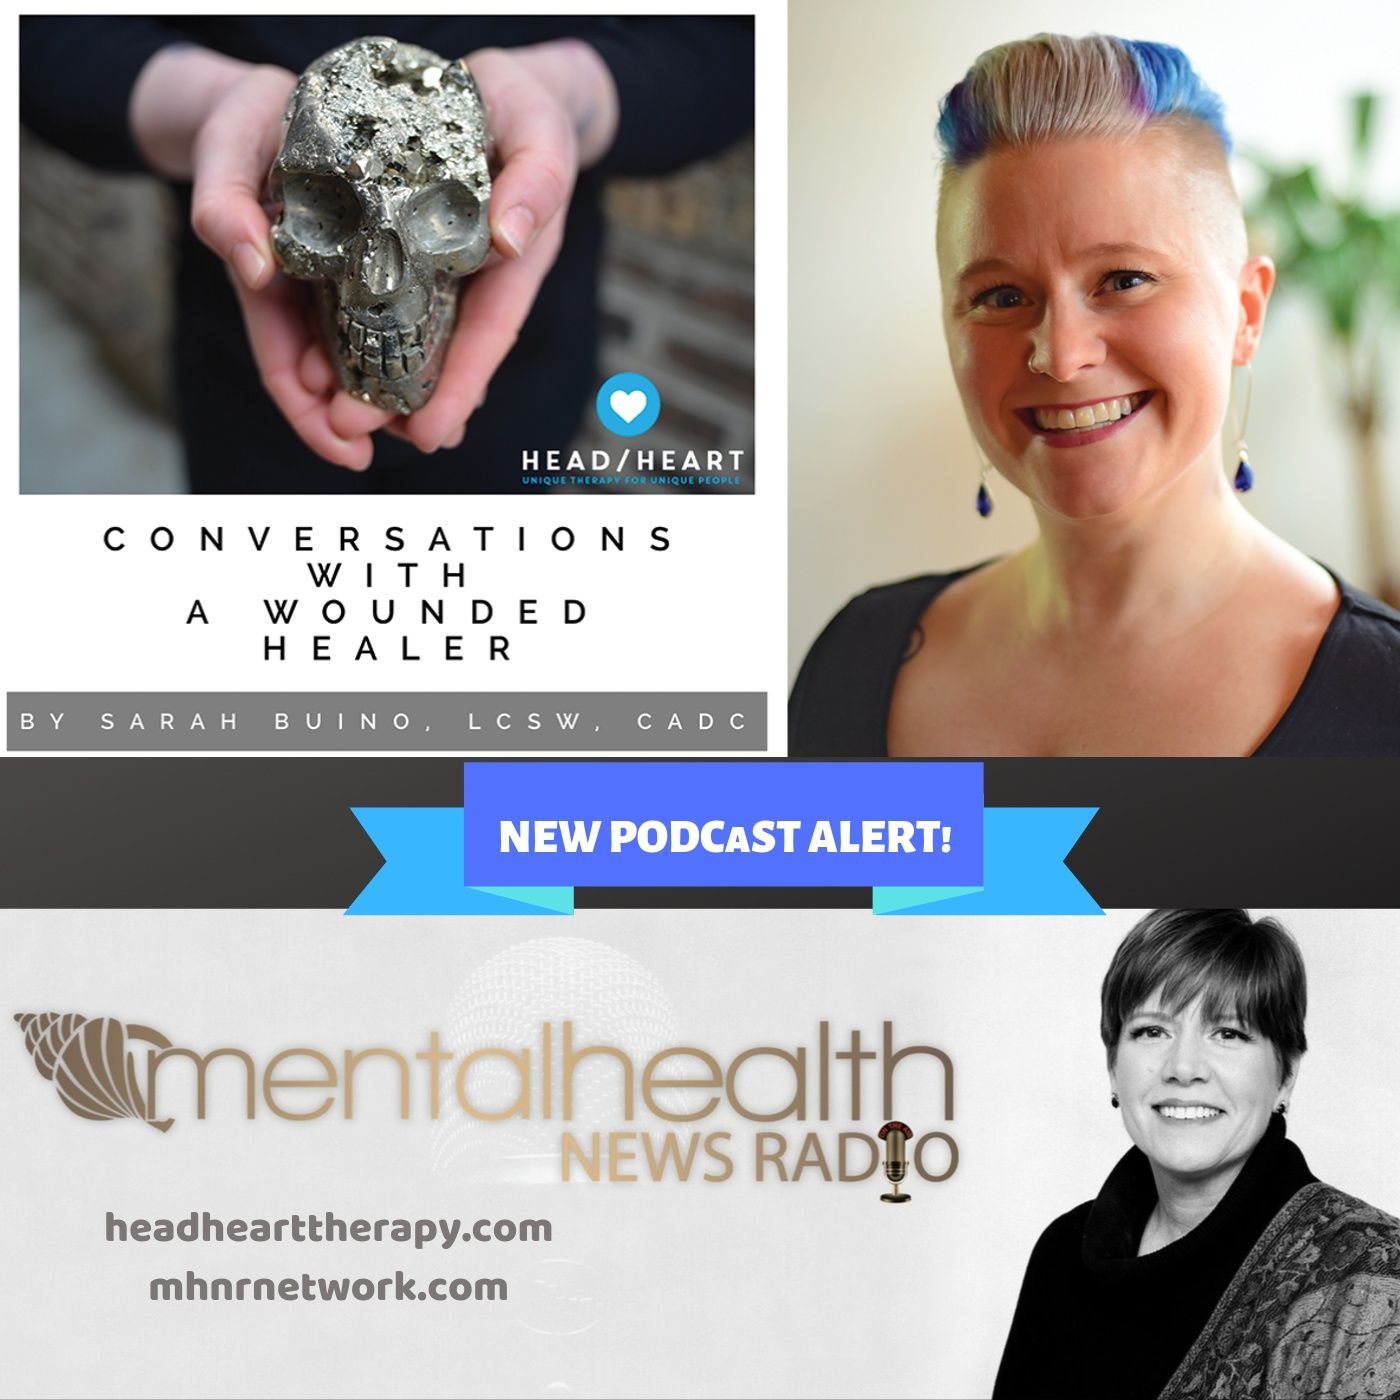 Mental Health News Radio - Conversations with a Wounded Healer